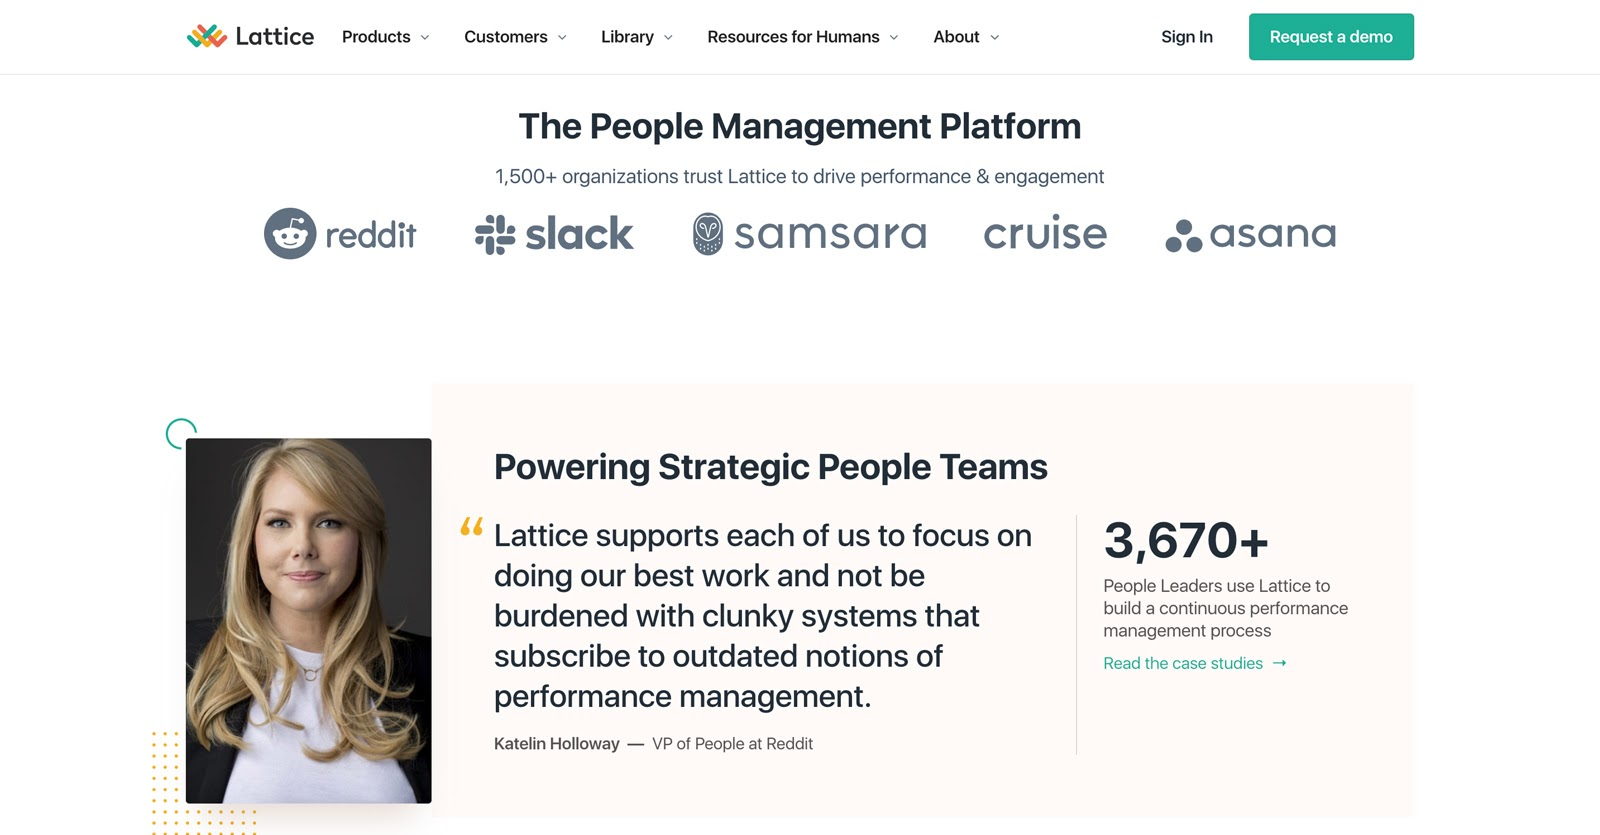 lattice's home page